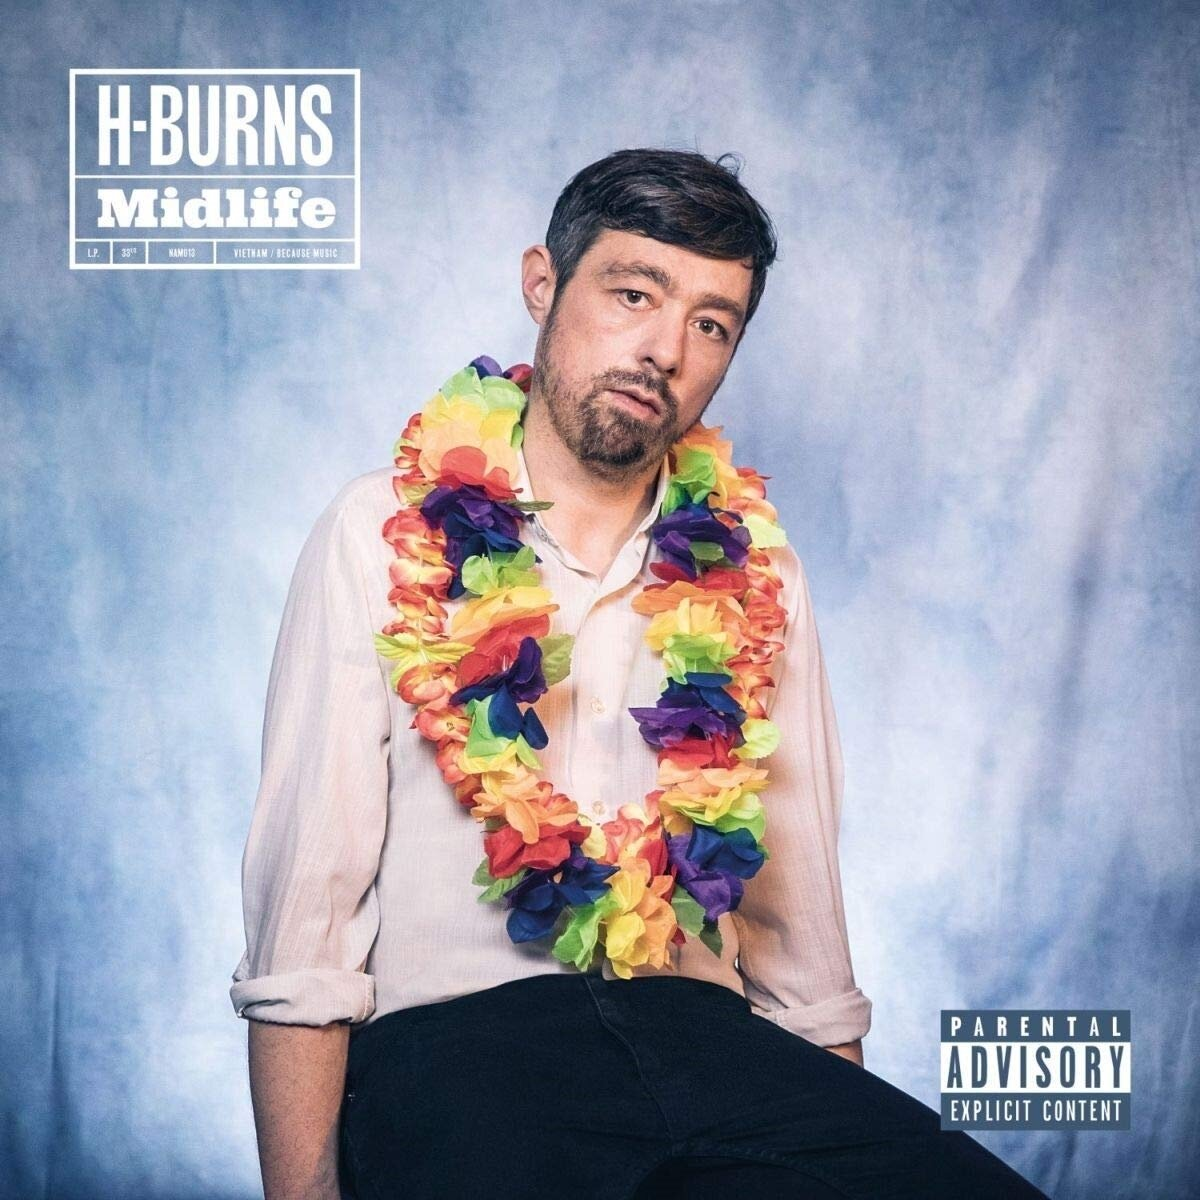 H-BURNS – Midlife (2019)